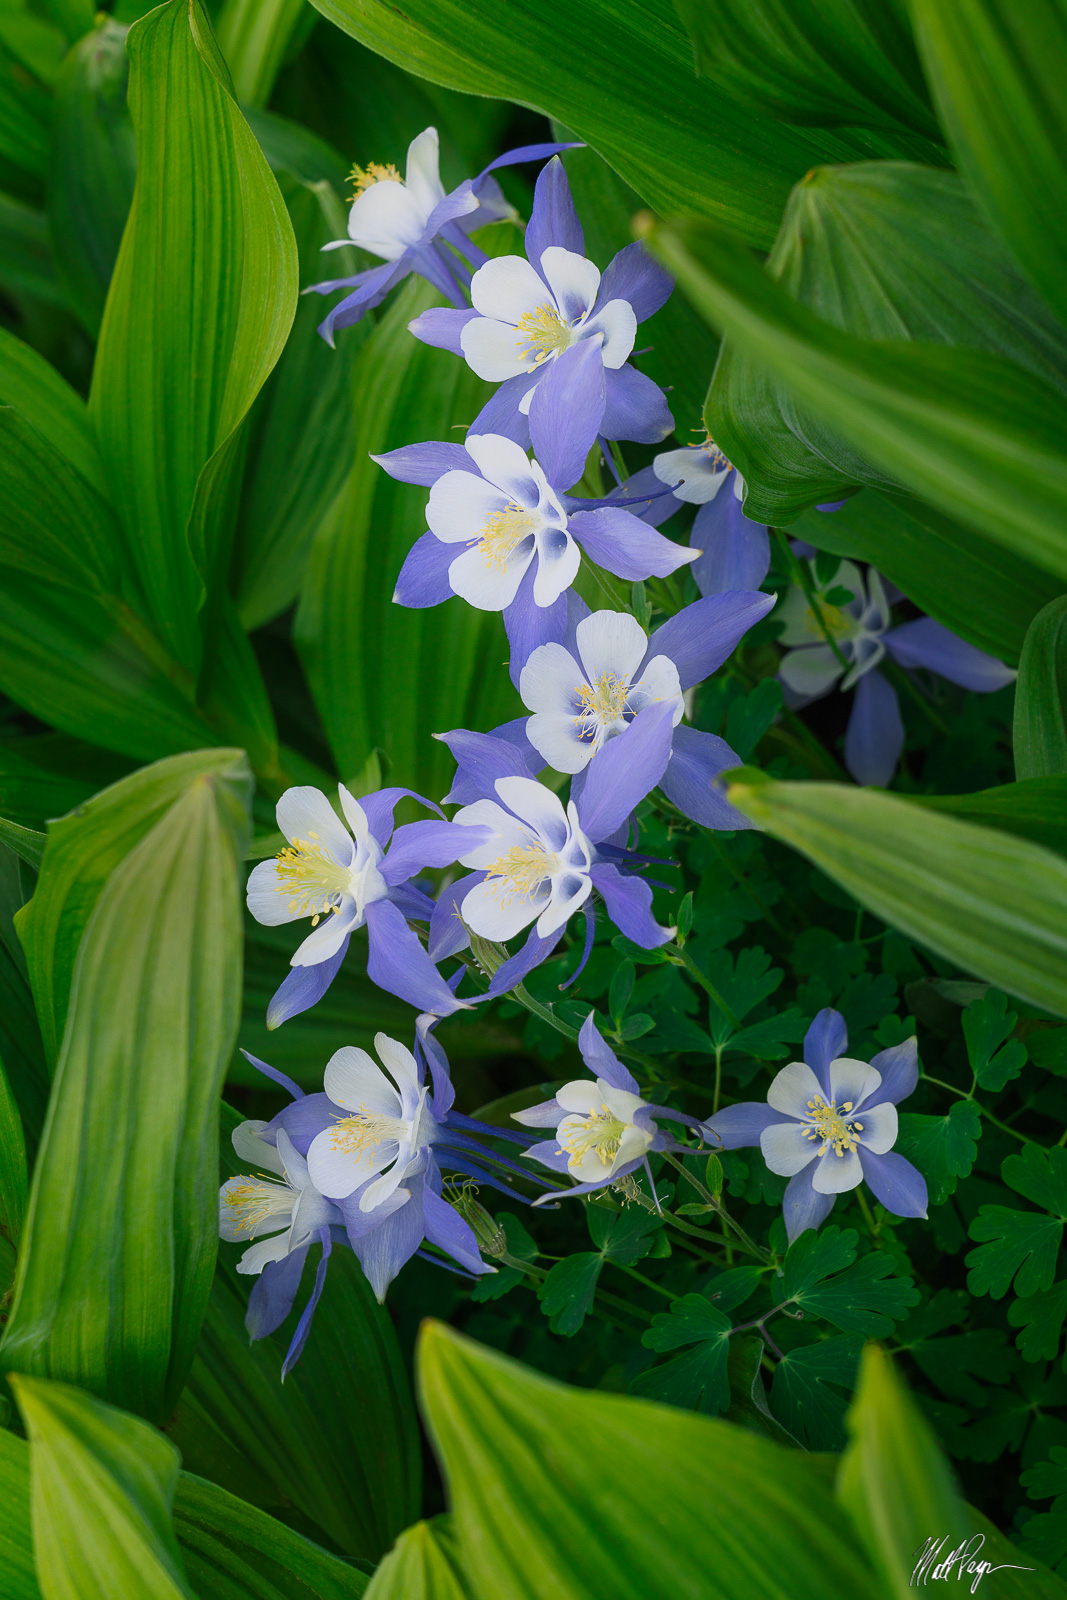 Rocky Mountain Columbine nestled beneath lush corn lilies found in an alpine meadow west of Silverton, Colorado in summer. Photographing...